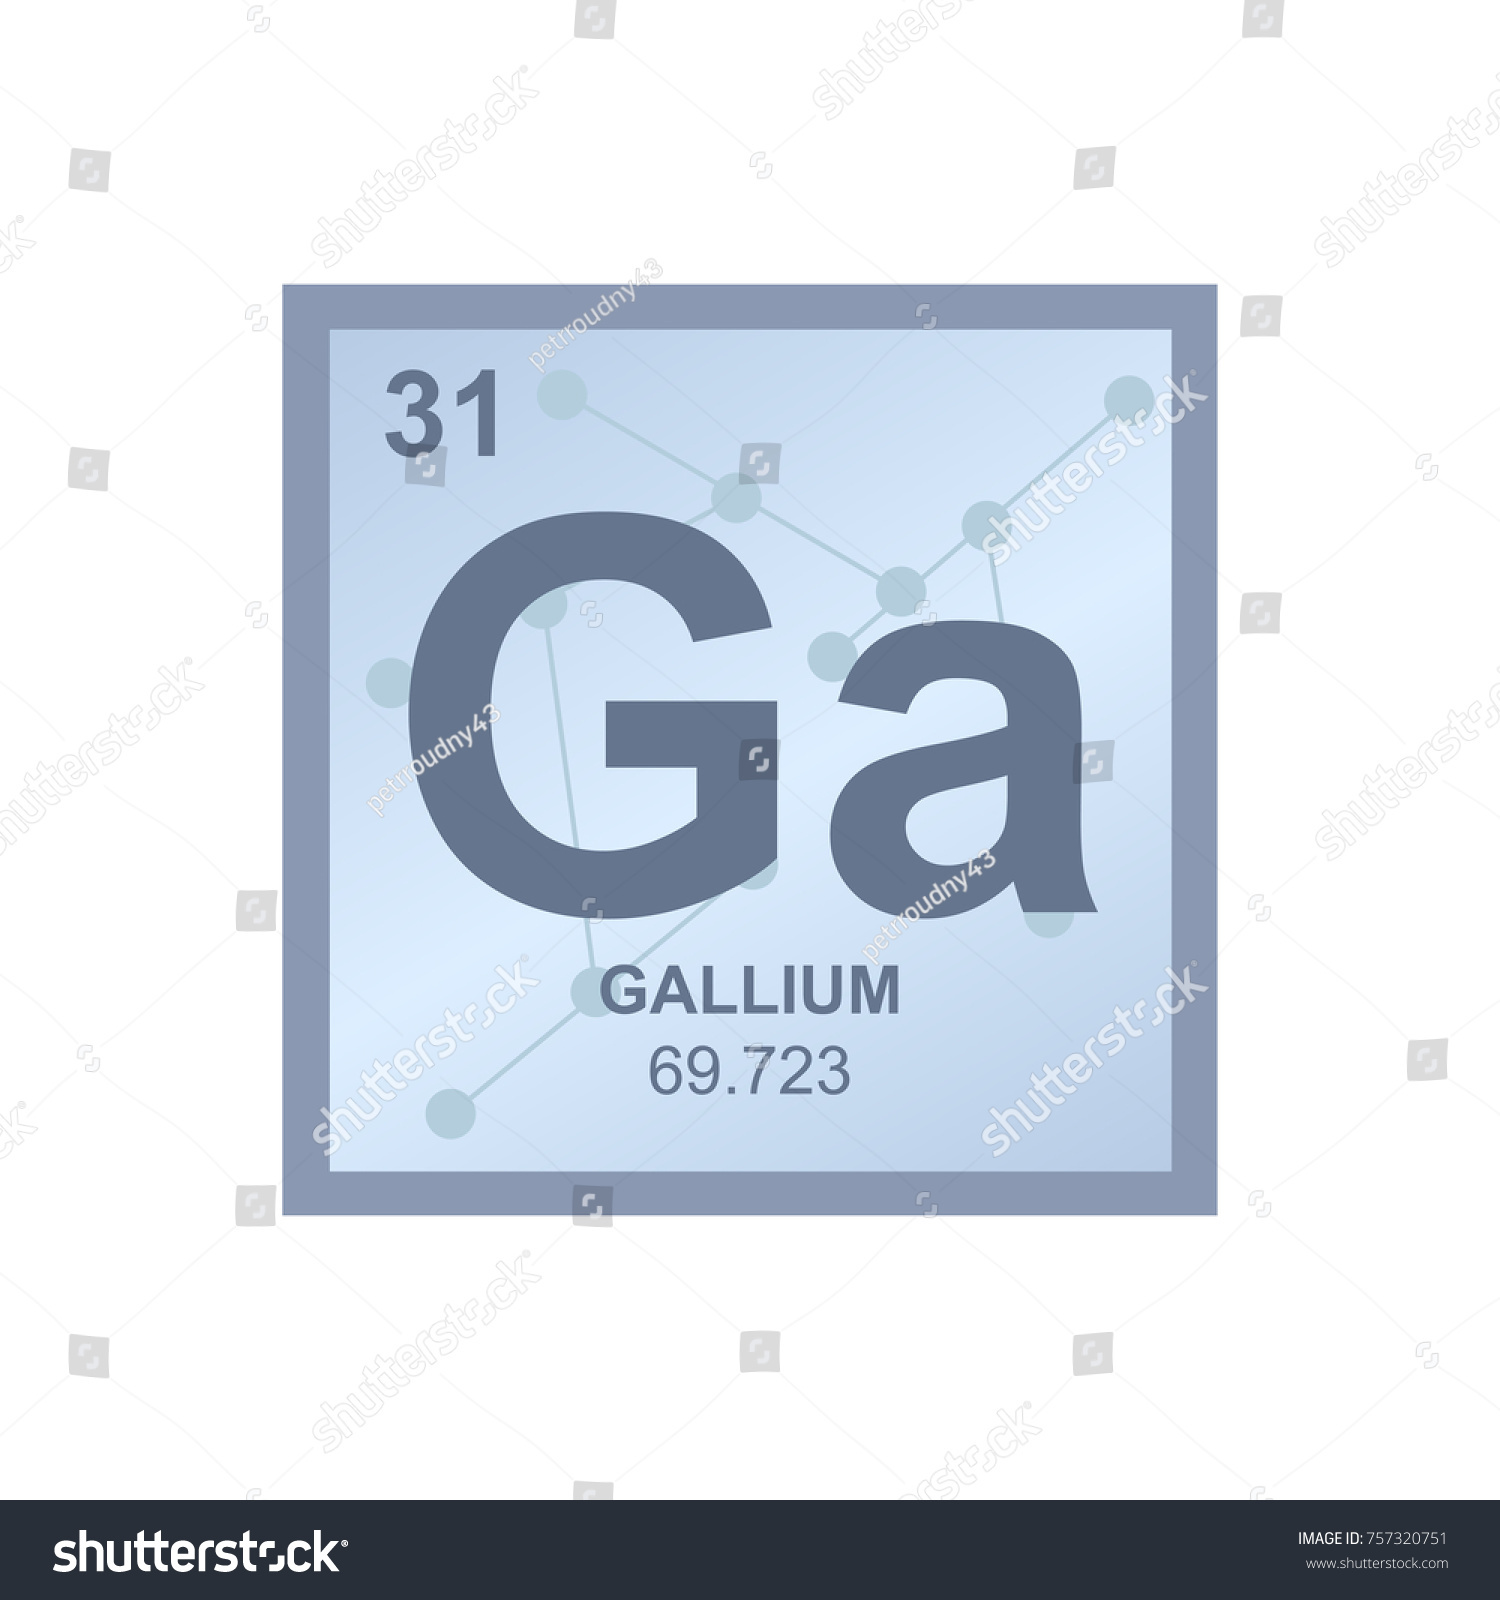 U symbol periodic table image collections periodic table images cesium symbol periodic table gallery periodic table images cesium symbol periodic table image collections periodic table gamestrikefo Image collections